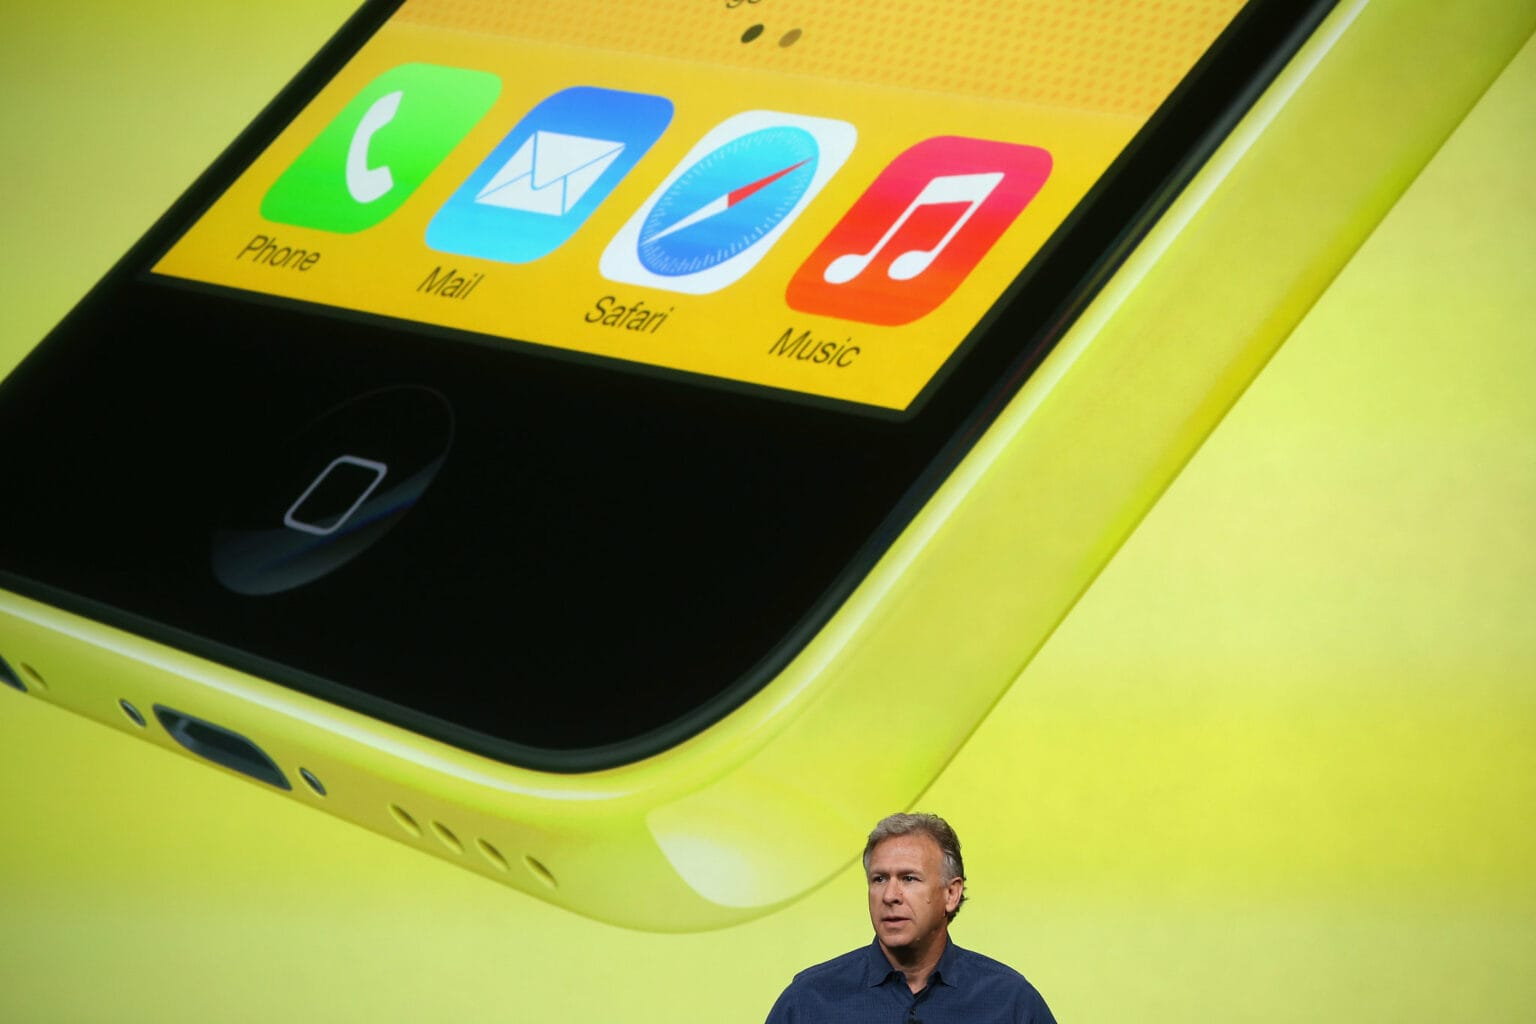 Apple exec Phil Schiller calls the App Store a good deal for devs. That's just one of the reasons Apple deserves a fair commission for powering the App Store.